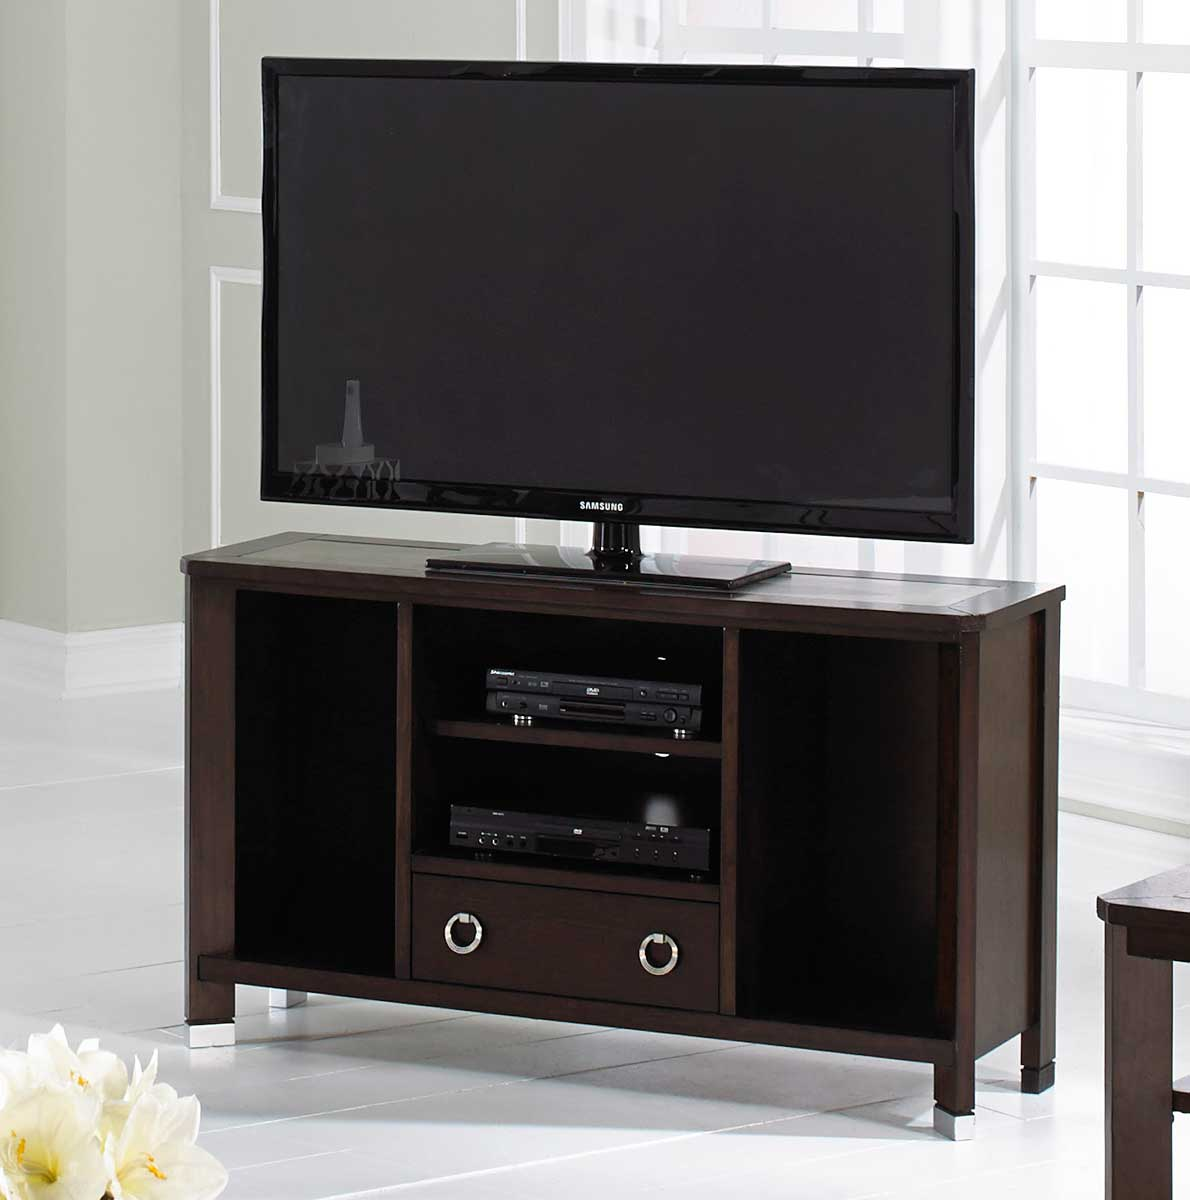 Jackson 861 Series TV Console Table